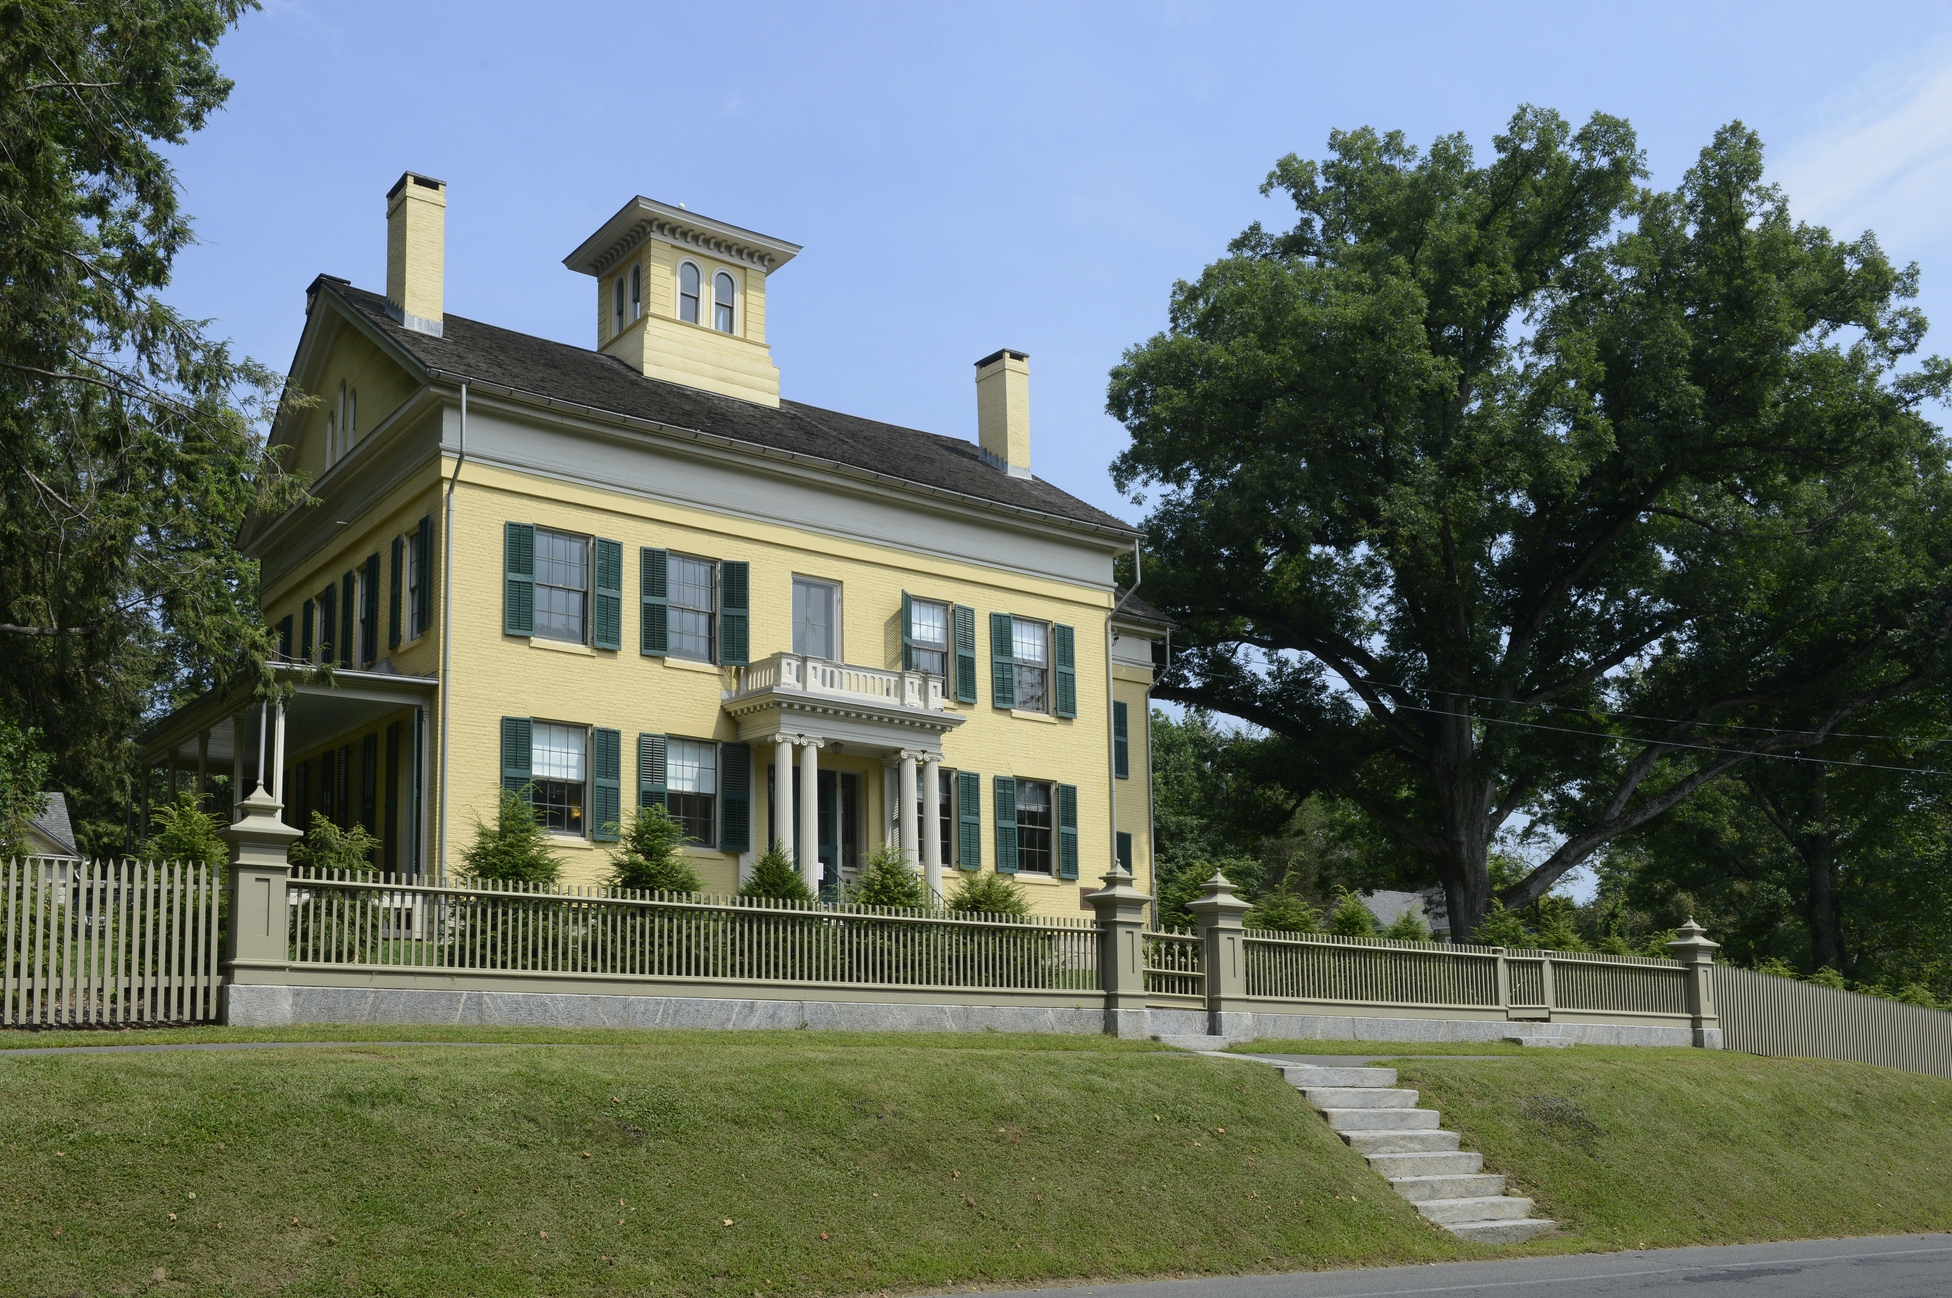 'Writers Walk' to note Amherst homes of Dickinson, Frost, Webster and others